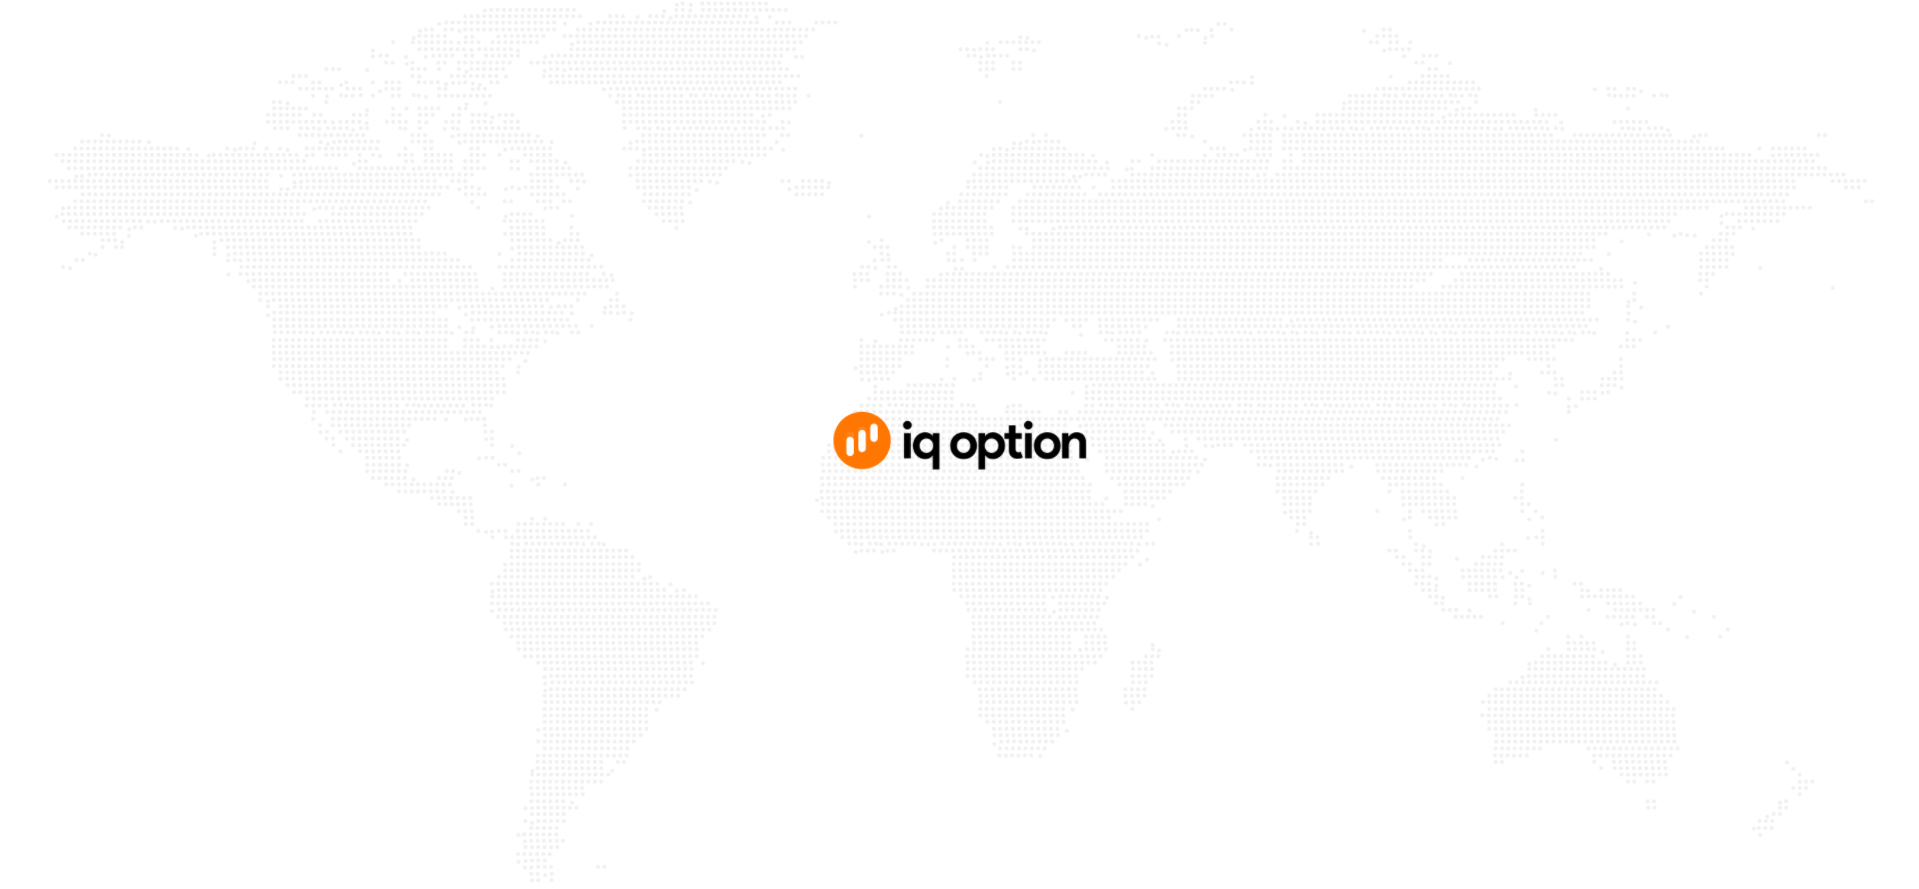 Is IQ Option a Scam or Legit